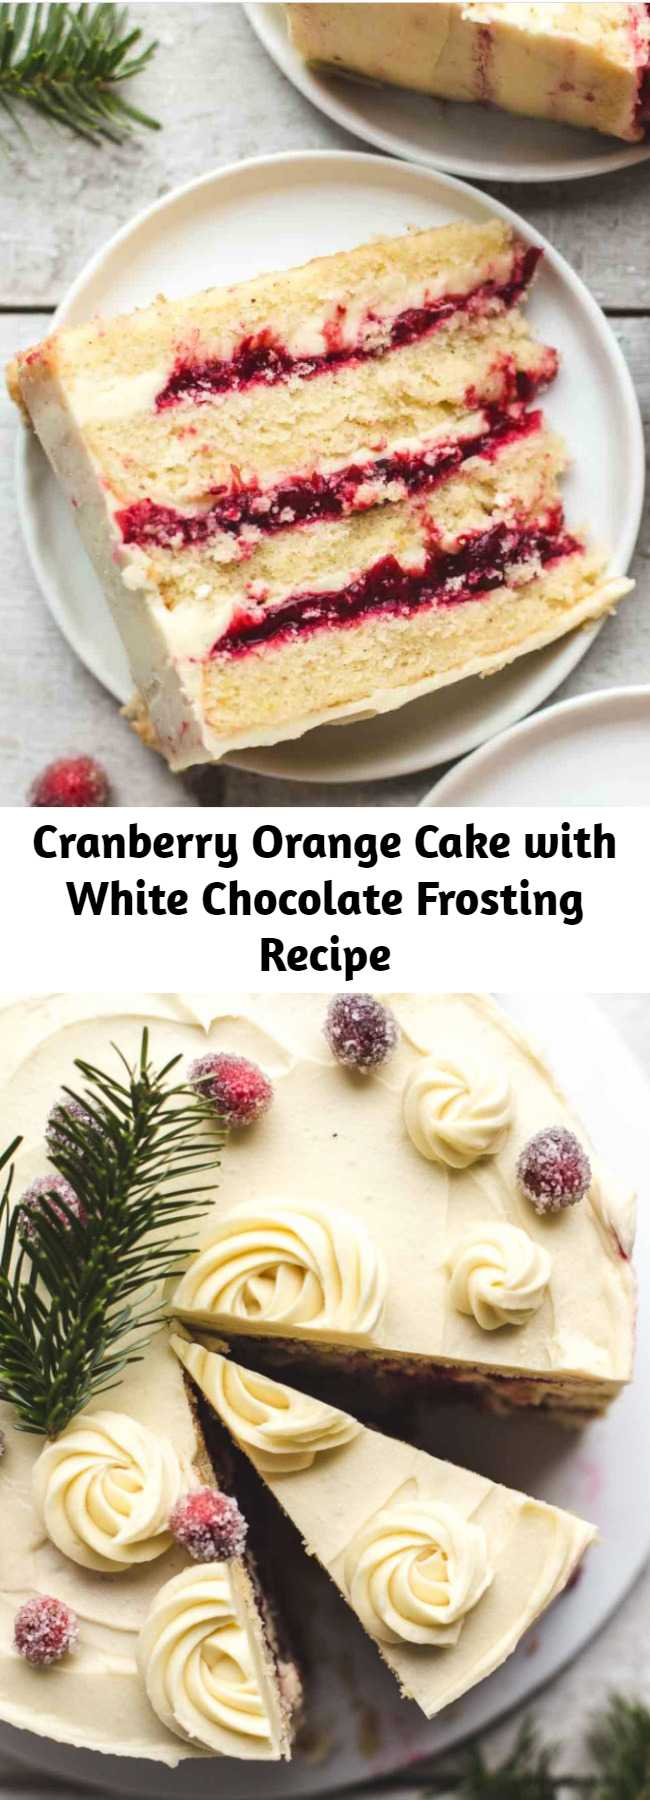 Cranberry Orange Cake with White Chocolate Frosting Recipe - This Cranberry Orange Cake is made of 4 fluffy orange cake layers, a homemade cranberry filling, and a super creamy white chocolate frosting. #buttercream #whitechocolate #chocolate #cranberry #orange #orangecake #cake #christmas #christmascake #dessert